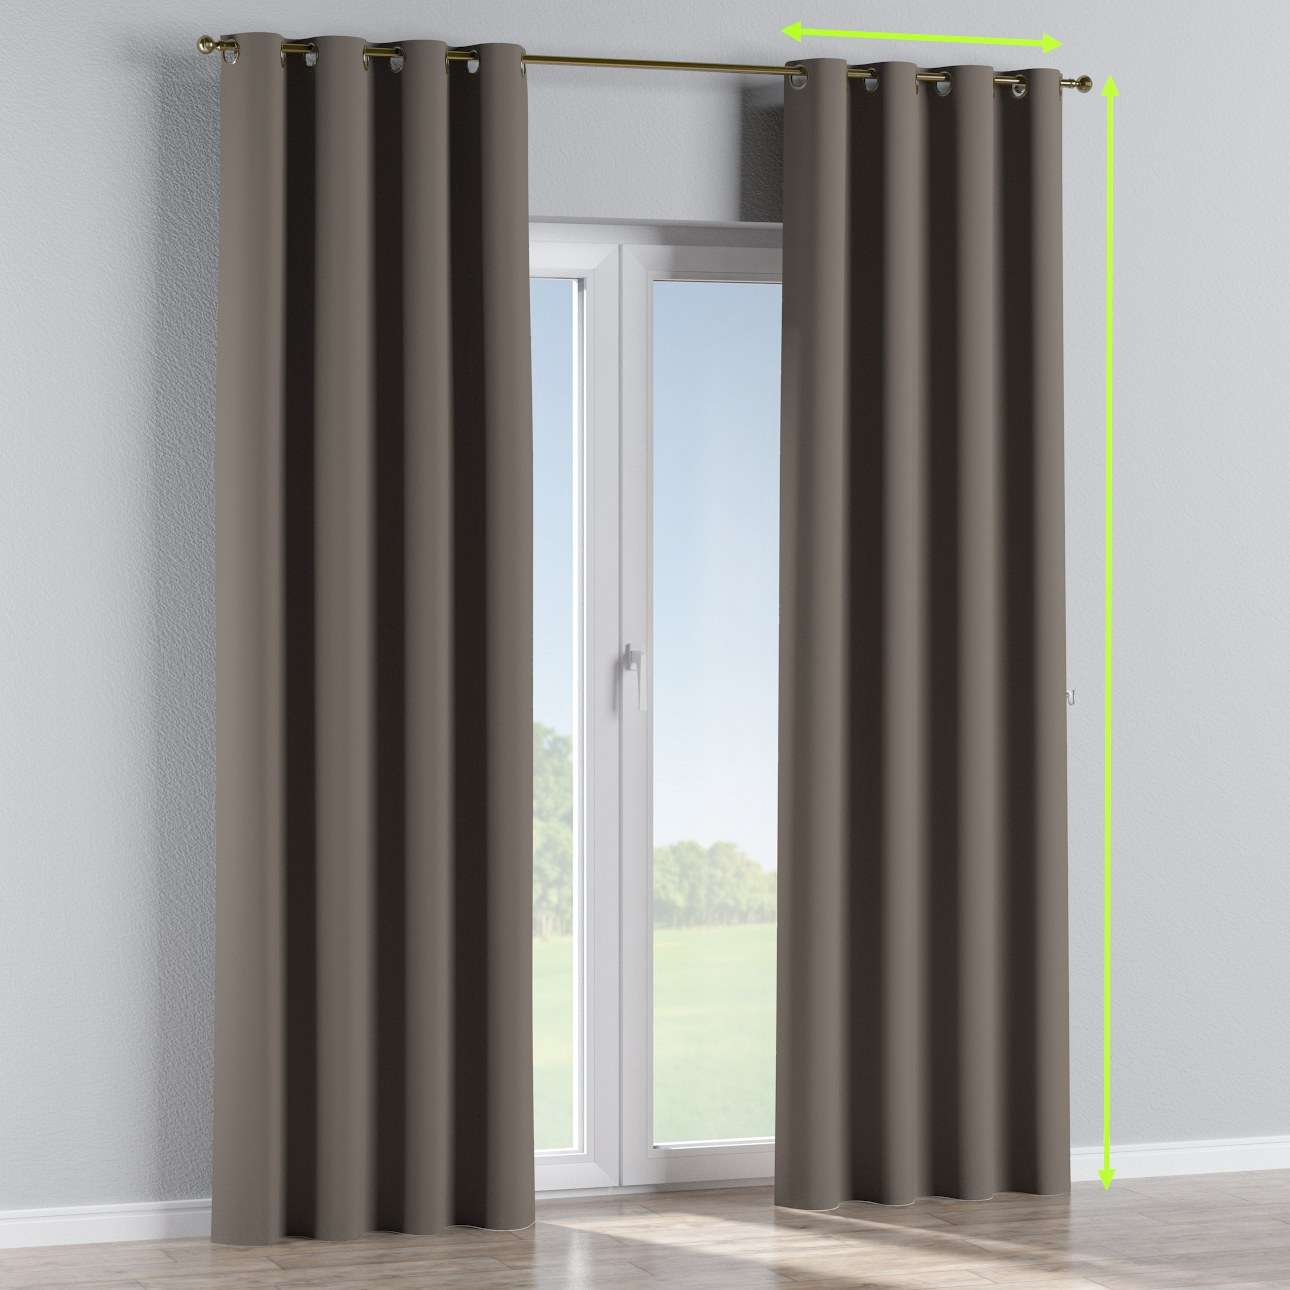 Blackout eyelet curtains in collection Blackout, fabric: 269-80